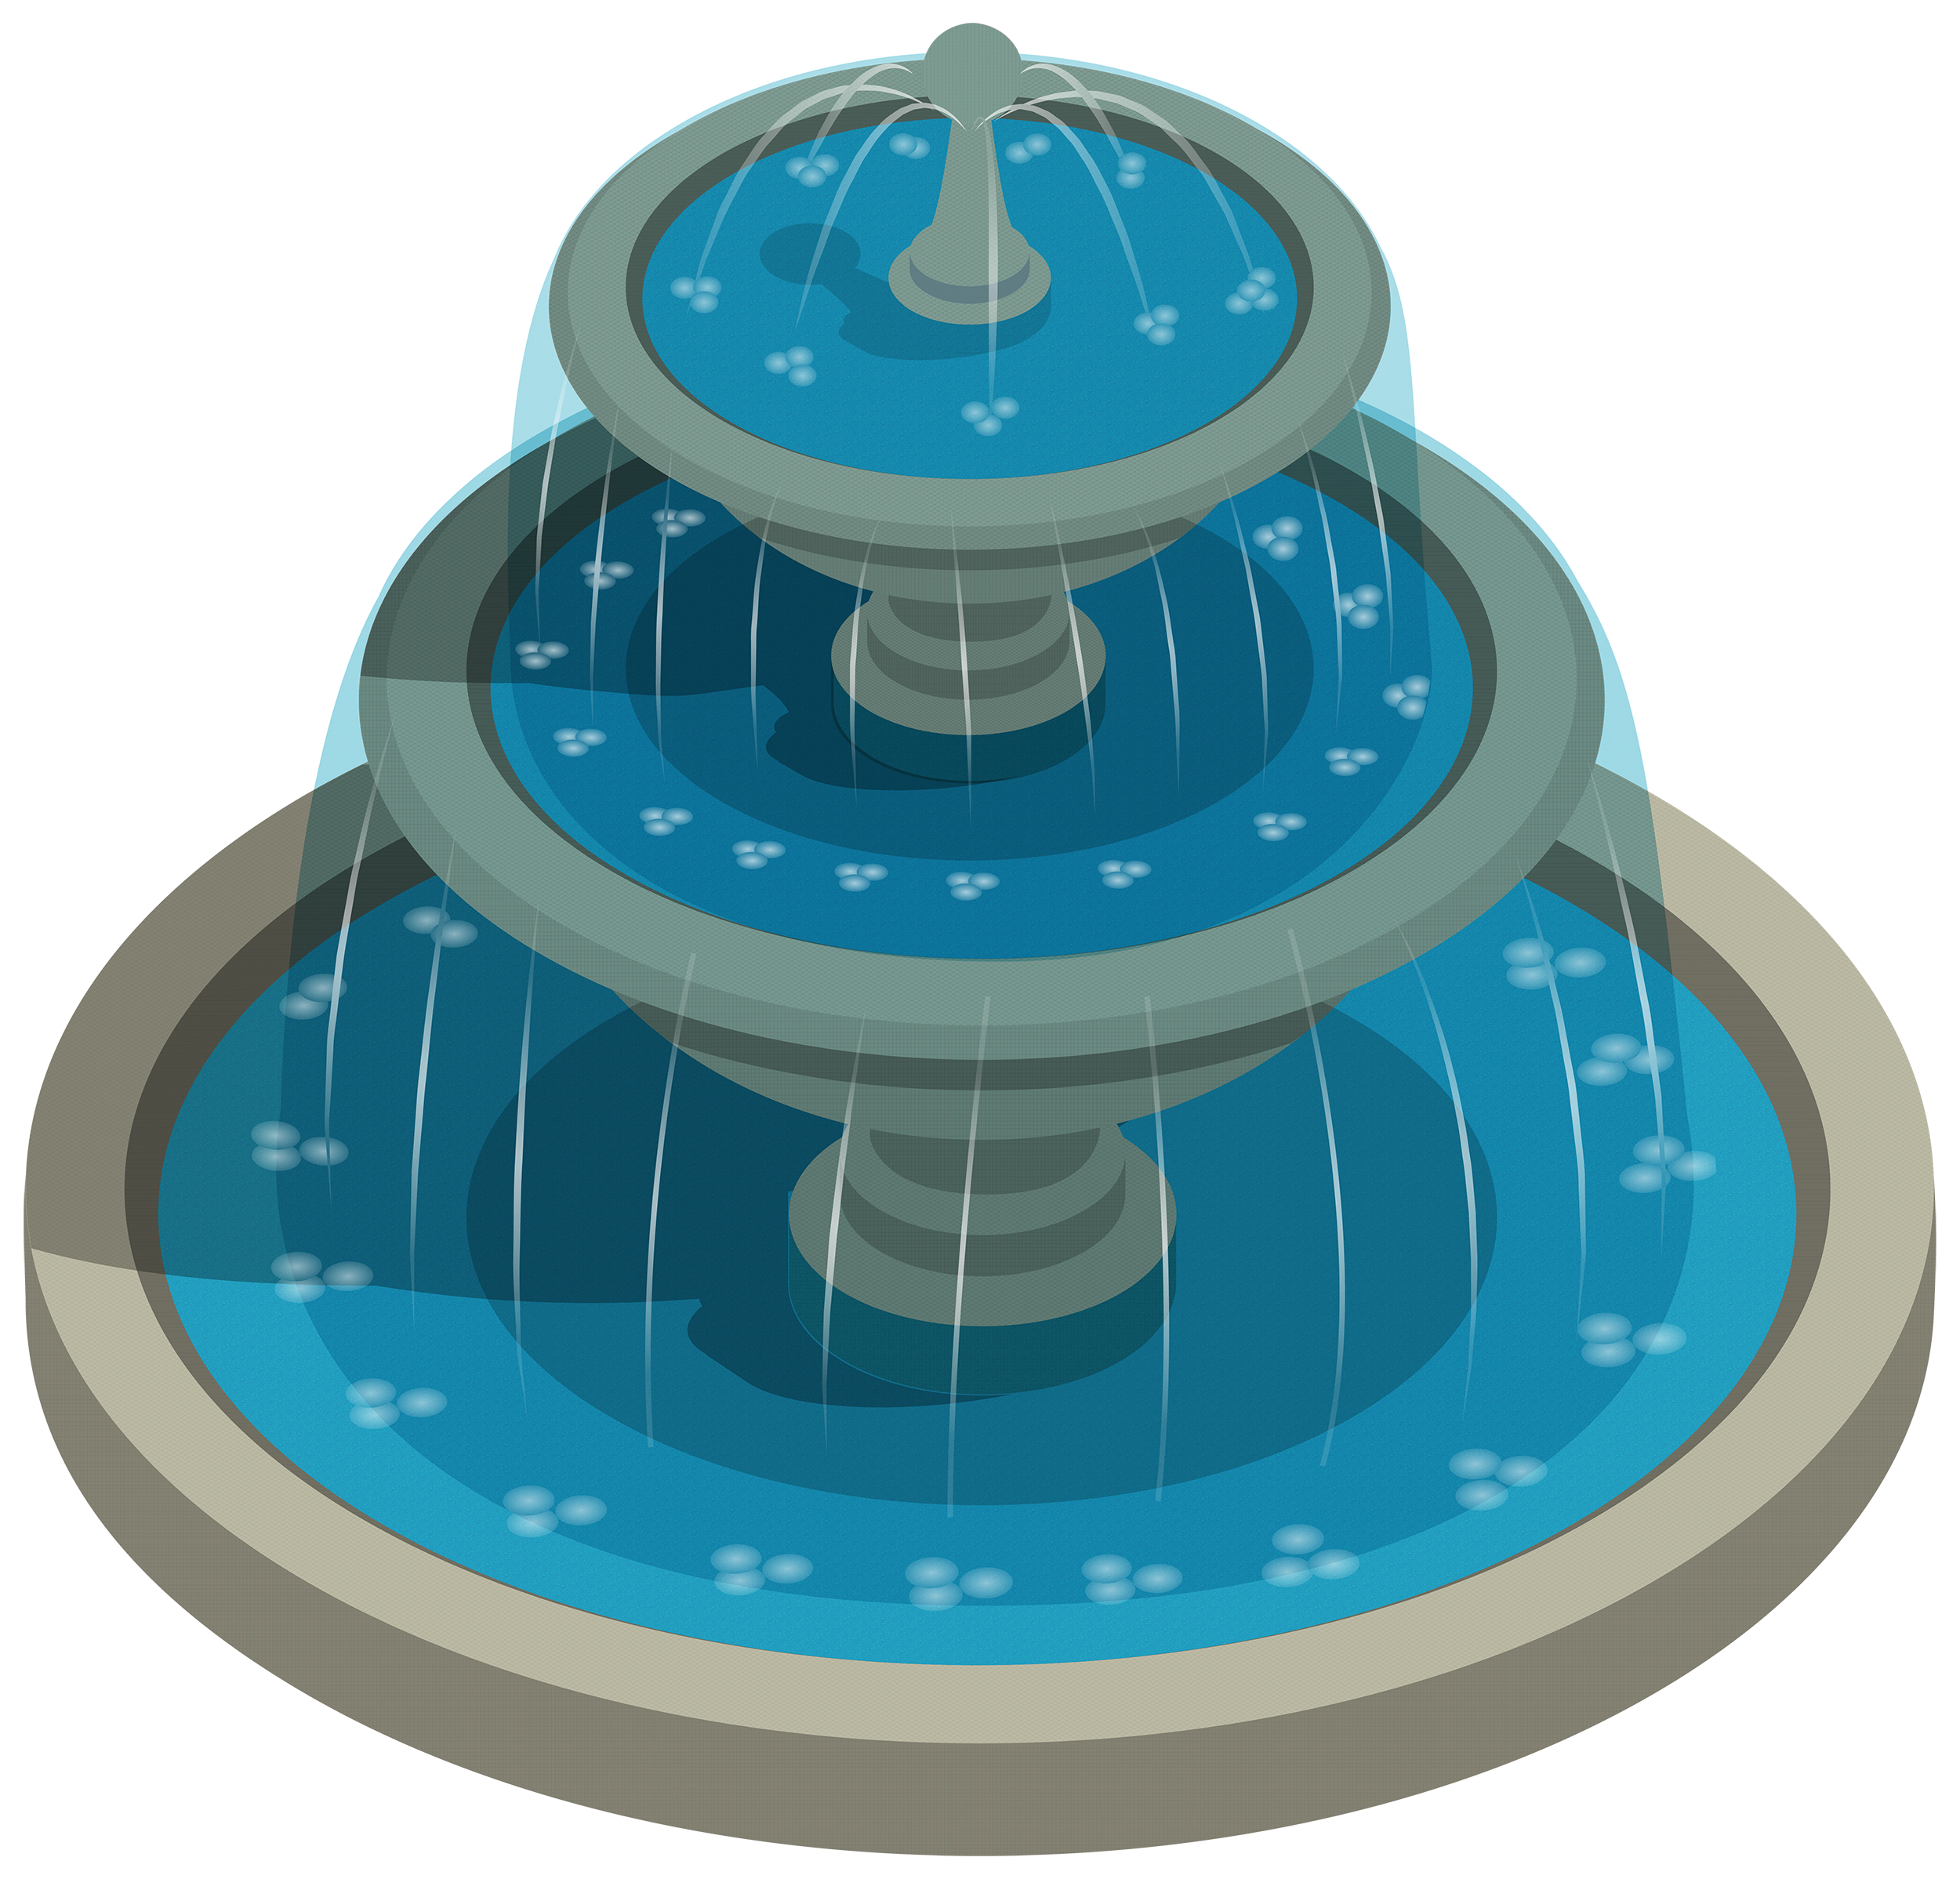 Round water png best. Fountain clipart